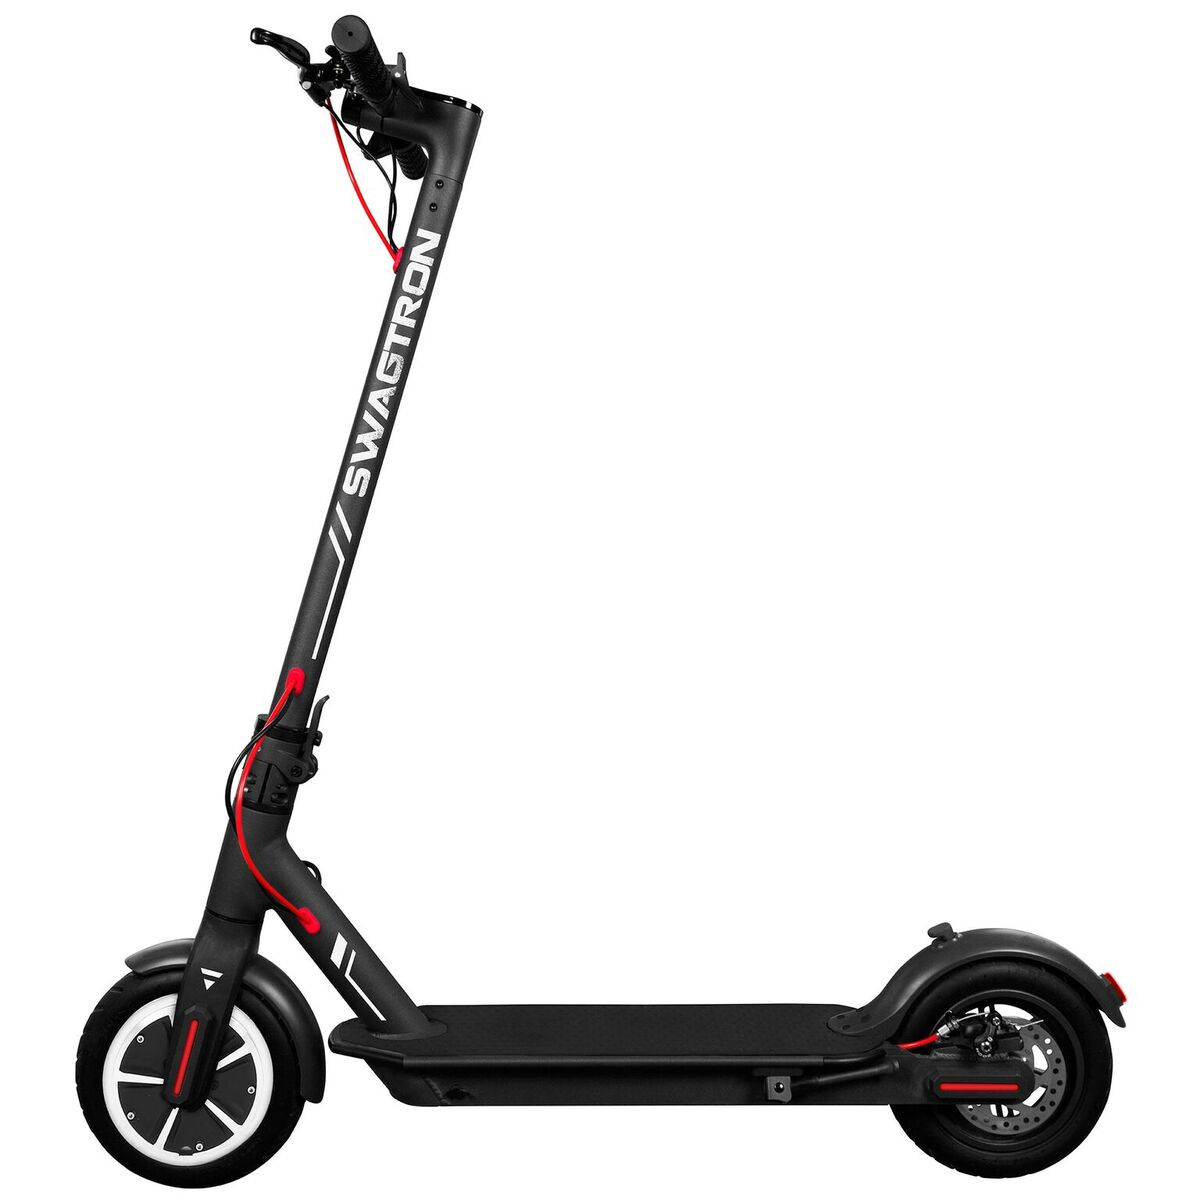 swagtron electric scooter city commuter swagger 5 elite. Black Bedroom Furniture Sets. Home Design Ideas